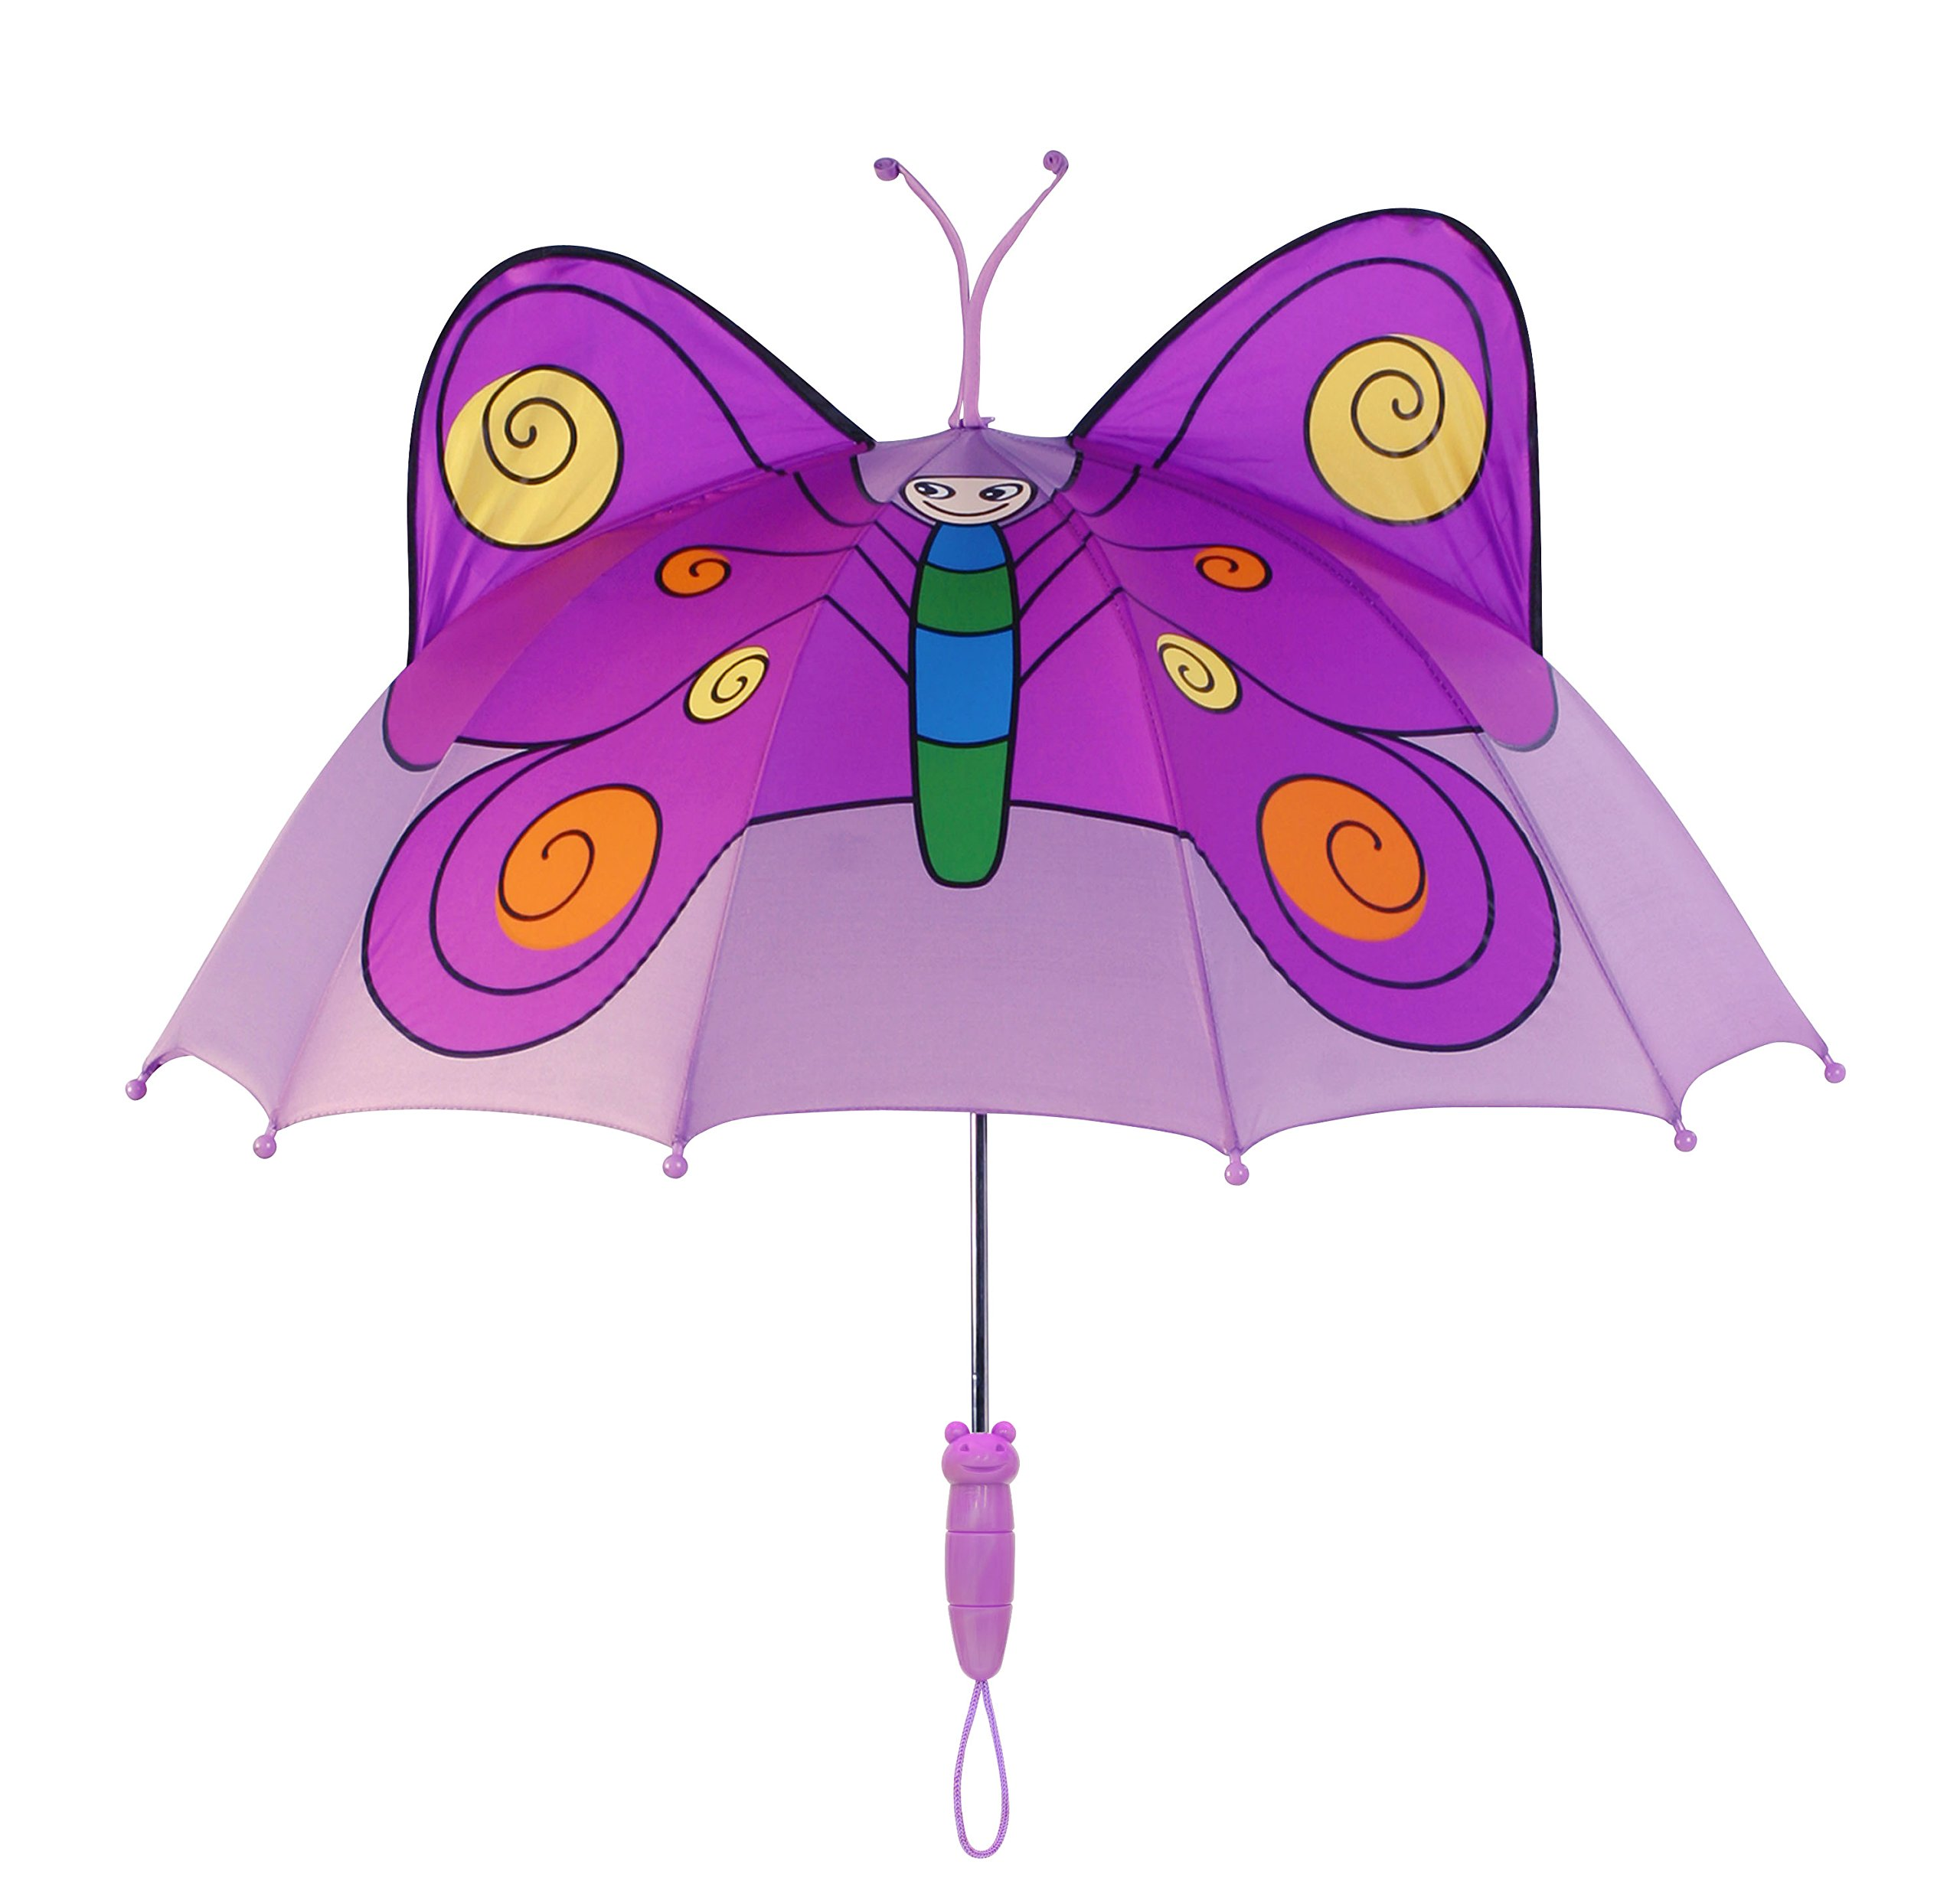 Kidorable Purple Butterfly Umbrella for Girls w/Fun Butterfly Handle, Pop-Up Wings, Antennae, 1 Size by Kidorable (Image #1)